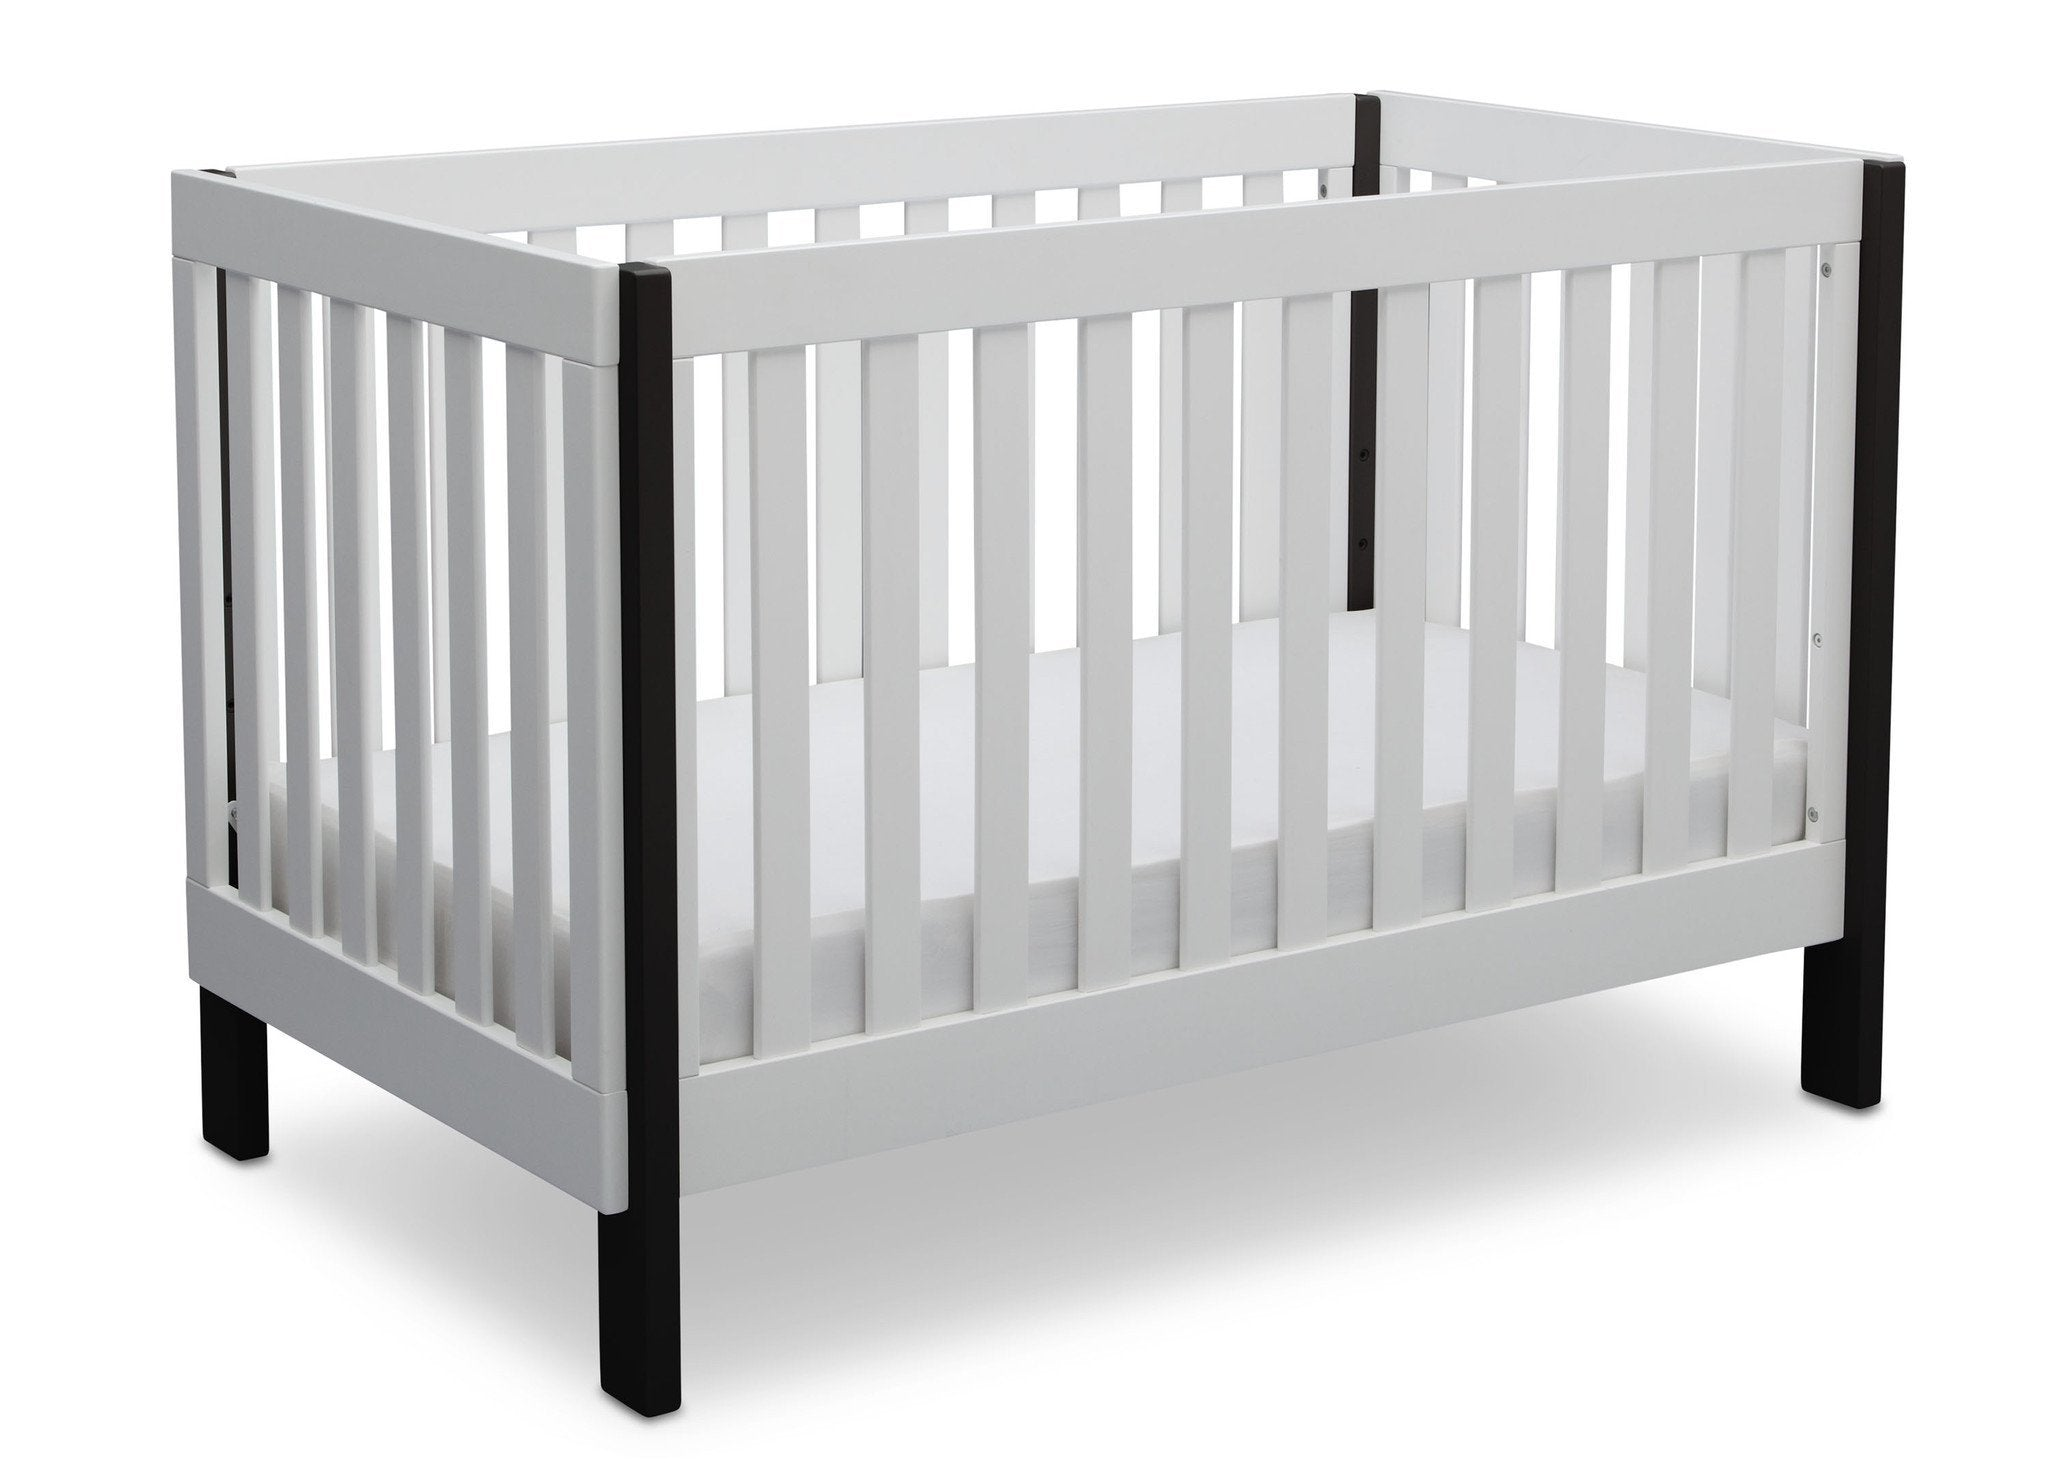 Delta Children Bianca with Ebony (149) Bellevue 3-in-1 Crib, Angled Crib View a4a